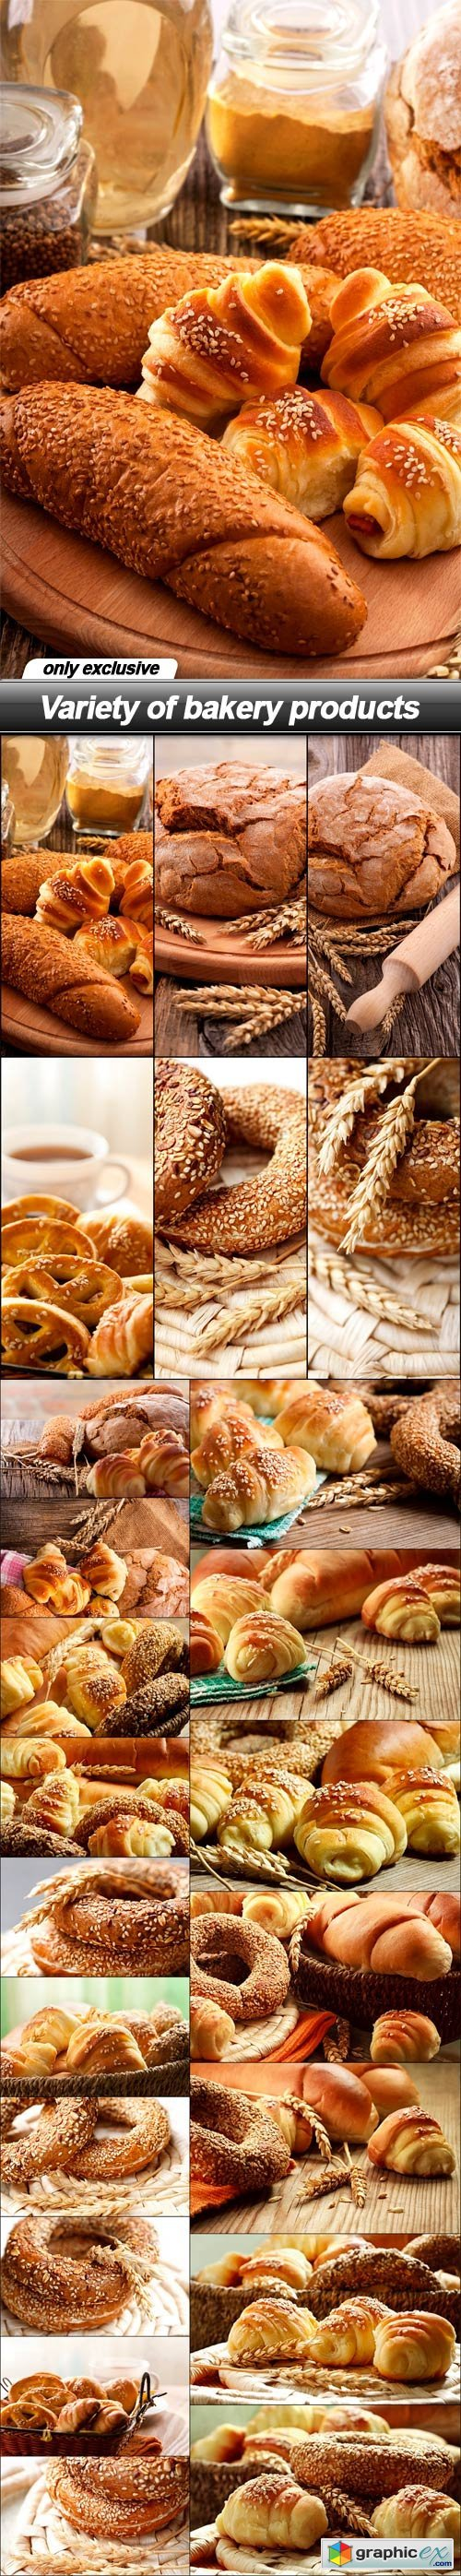 Variety of bakery products - 23 UHQ JPEG